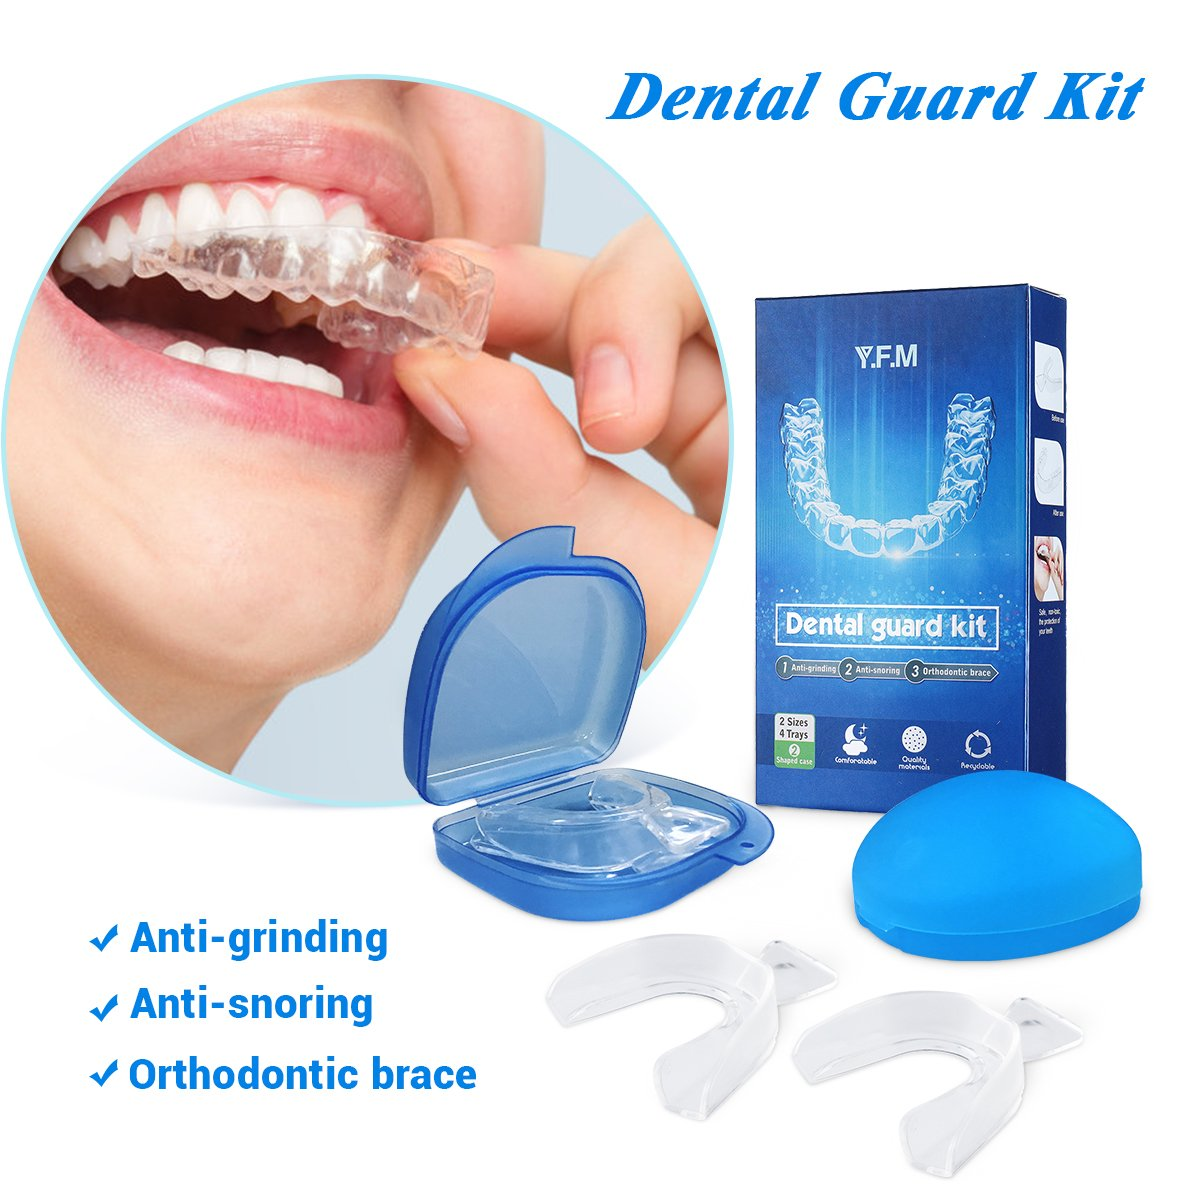 Professional Dental Guard Y.F.M Anti Grinding Teeth Custom Moldable Dental Night Guard, Stops Bruxism,Tmj & Eliminates Teeth Clenching.Pack of 4 Guards in 2 Sizes for CustomSatisfaction Is Guaranteed!